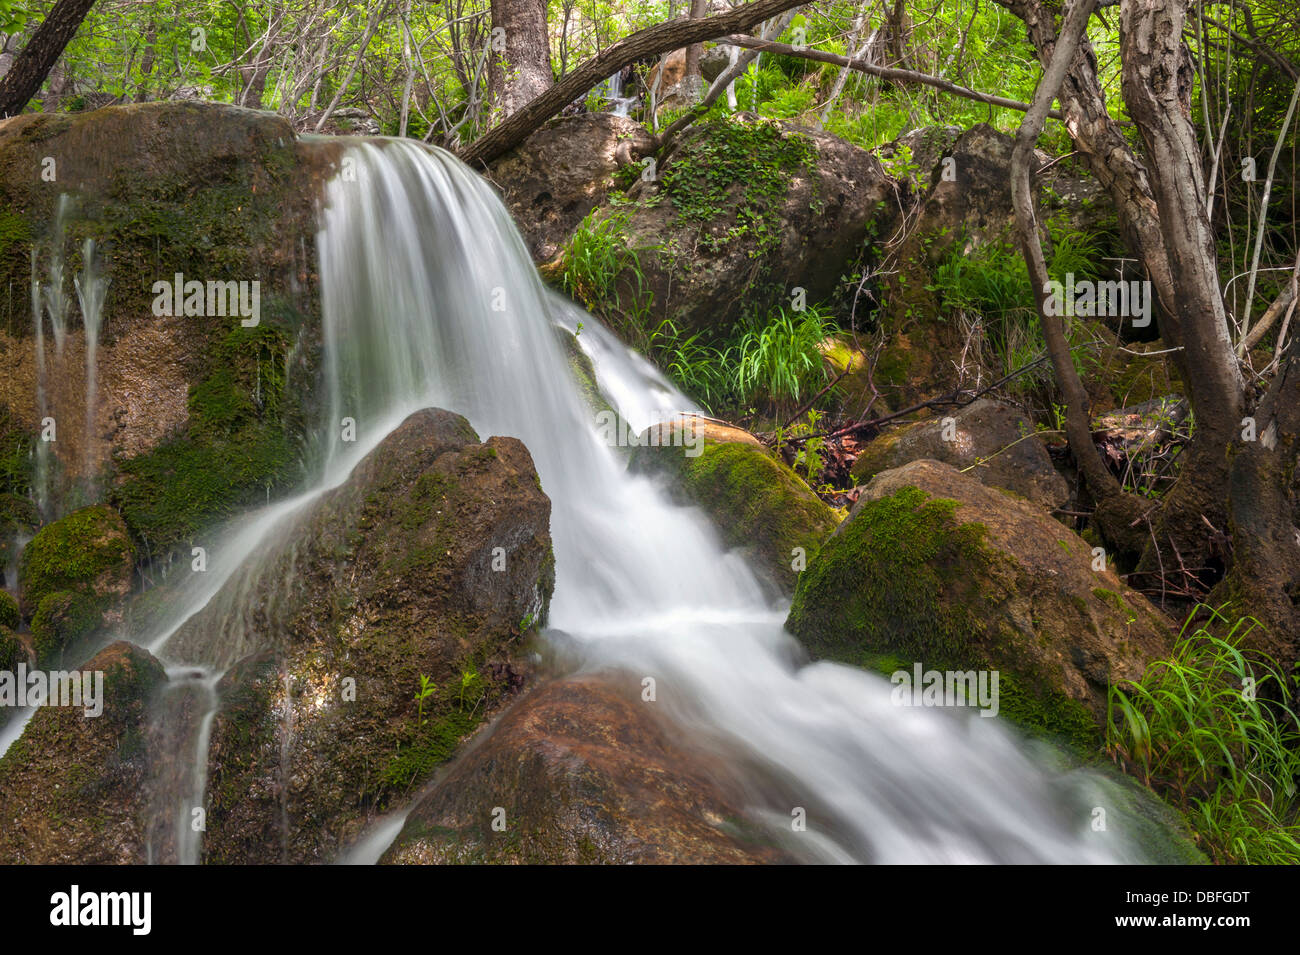 Scenic view of Obruk waterfalls Kozan Adana Turkey - Stock Image